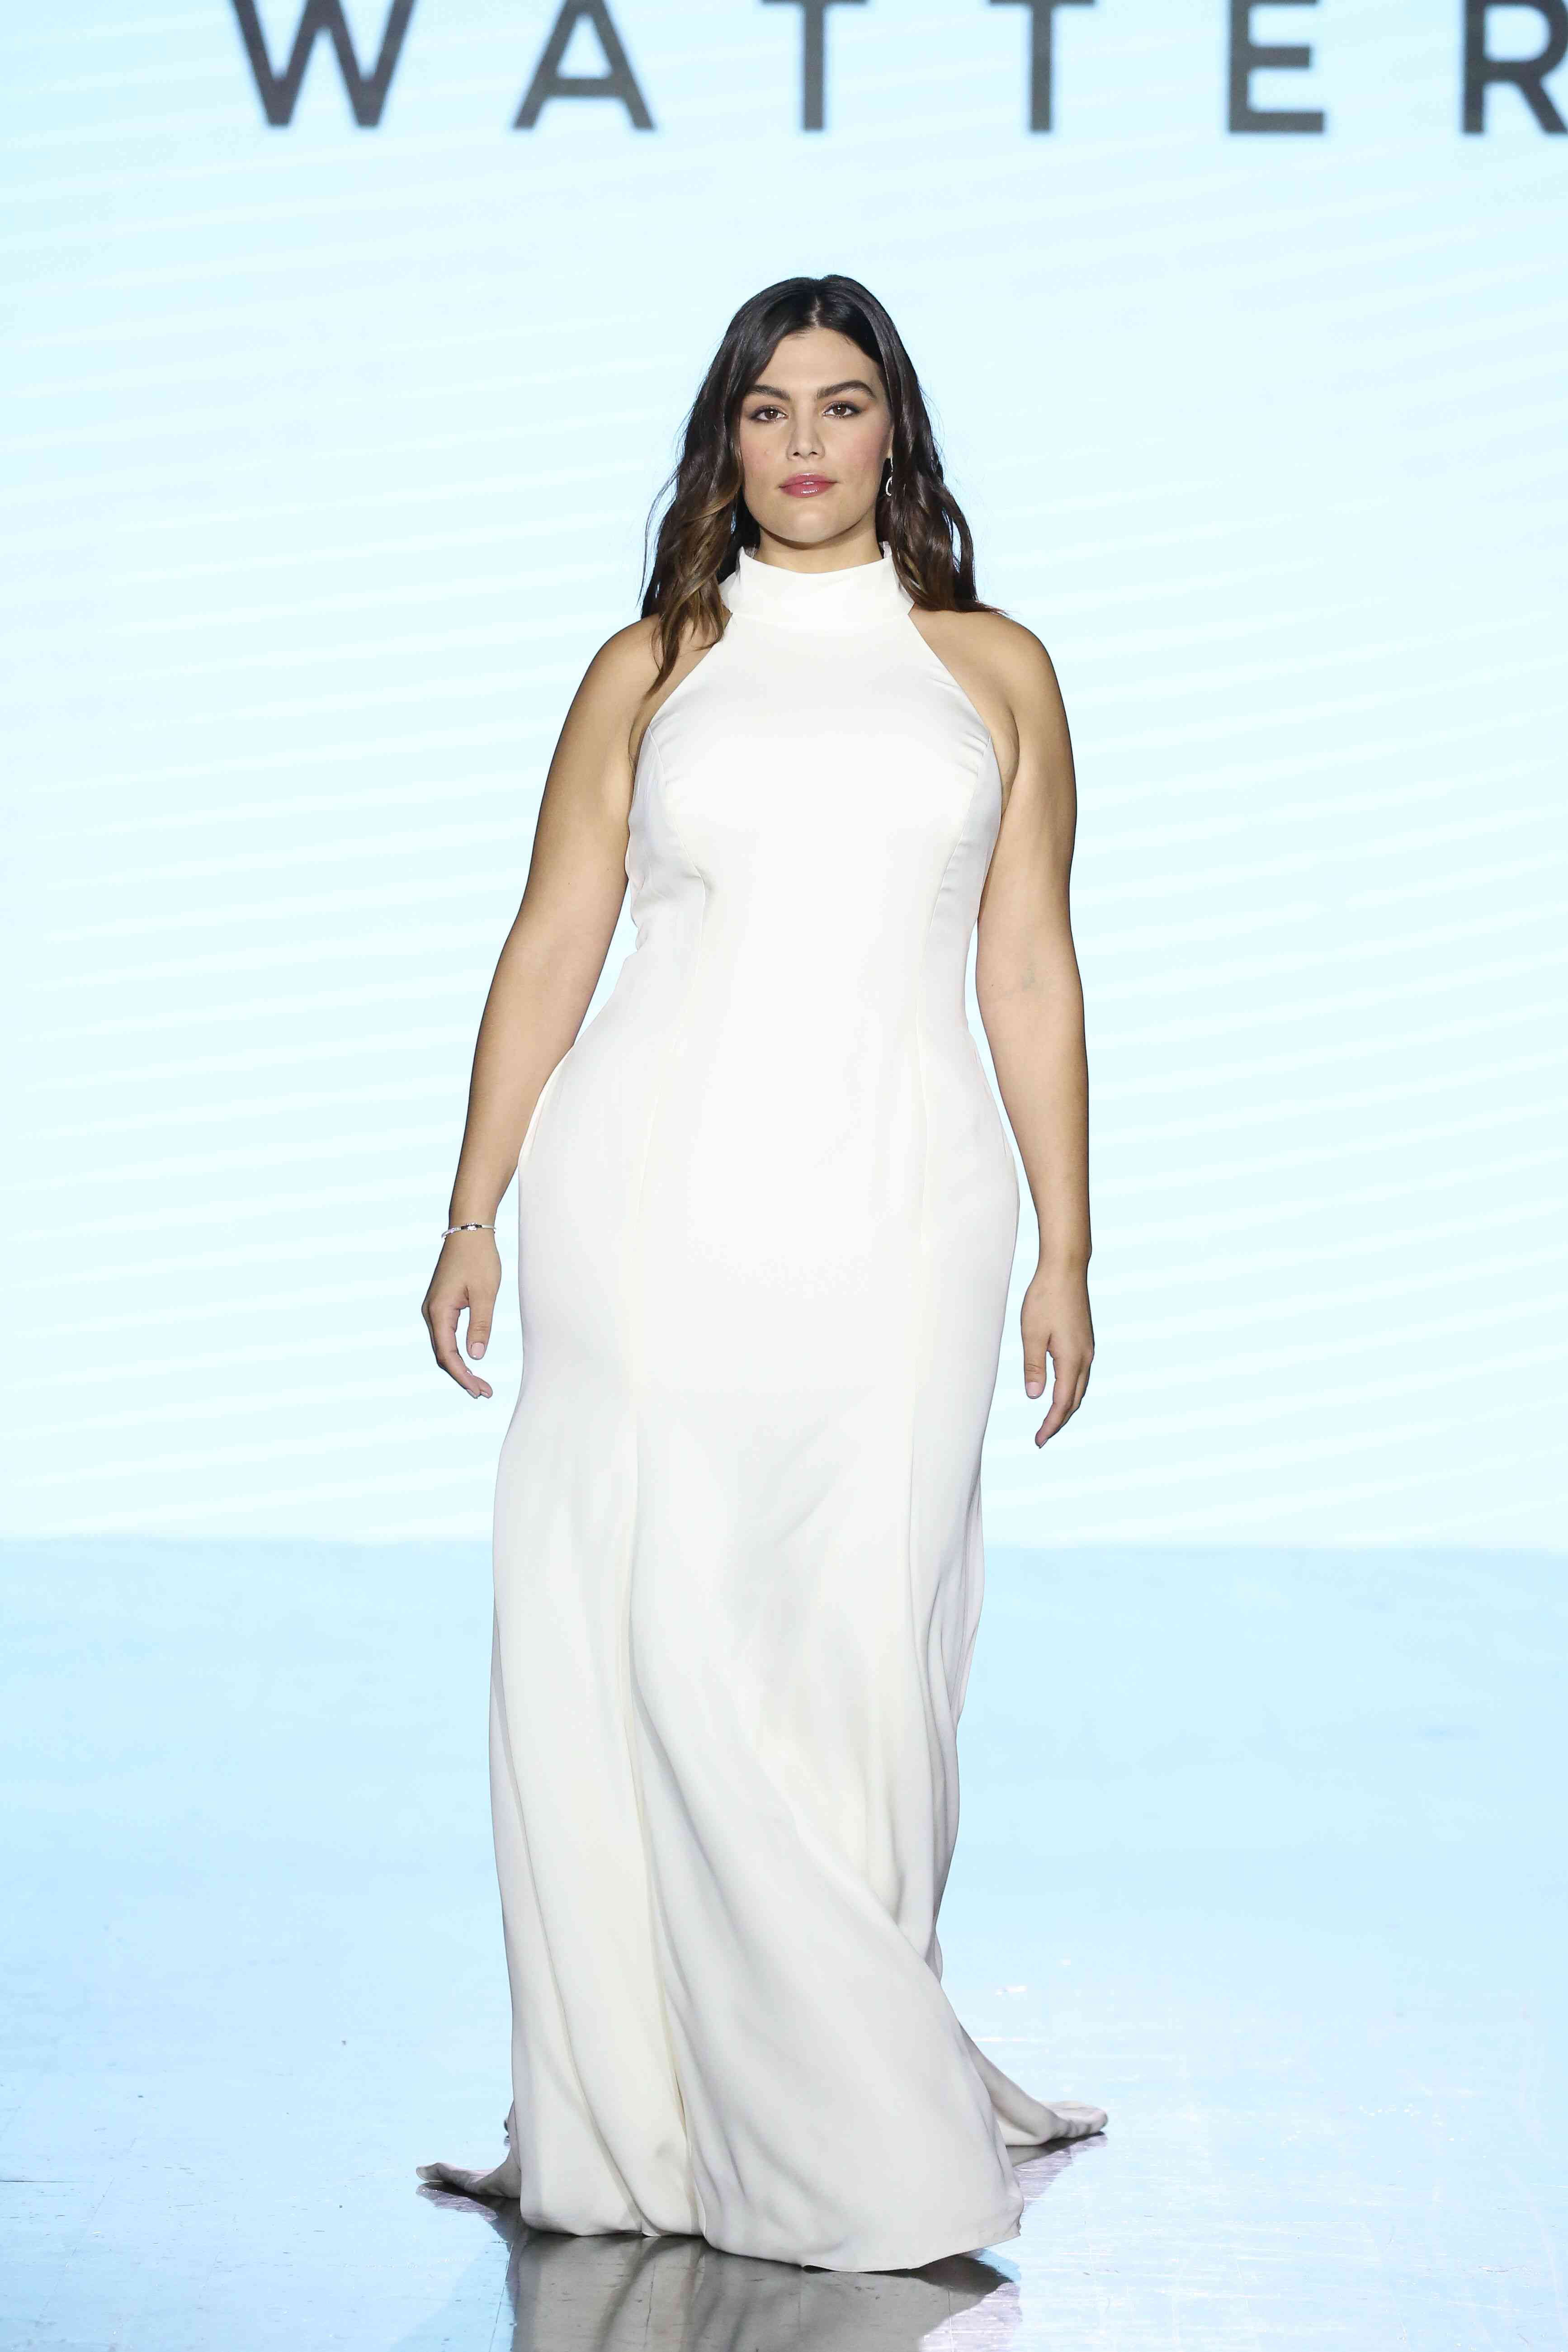 Model on runway in fitted high-neck satin sheath gown